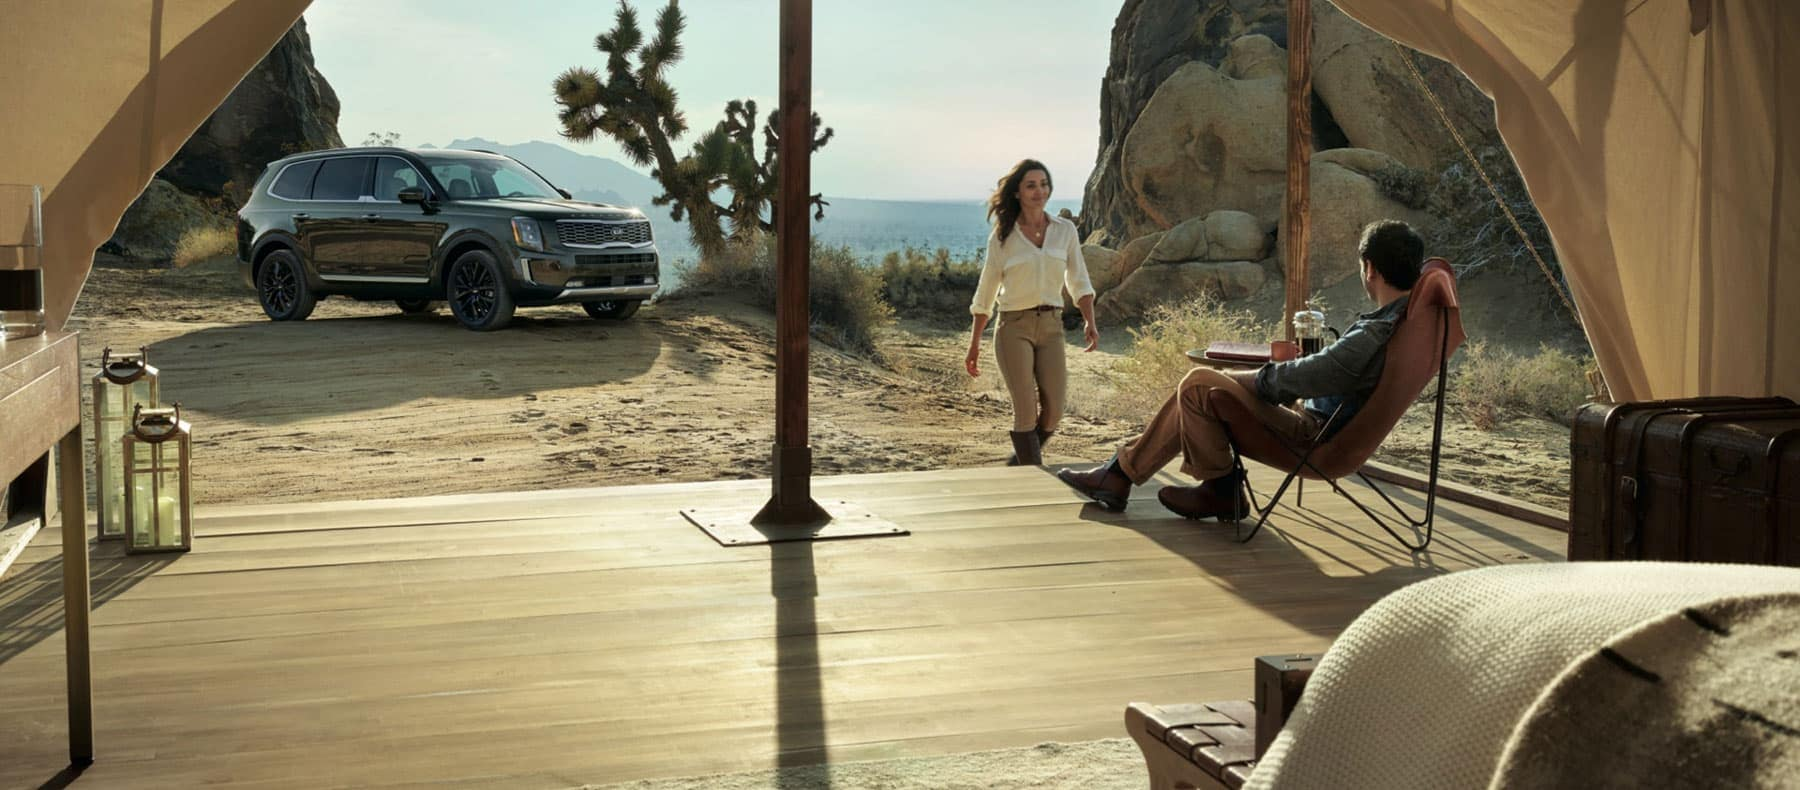 Kia SUV sitting outside a camp site of a man and woman in the desert